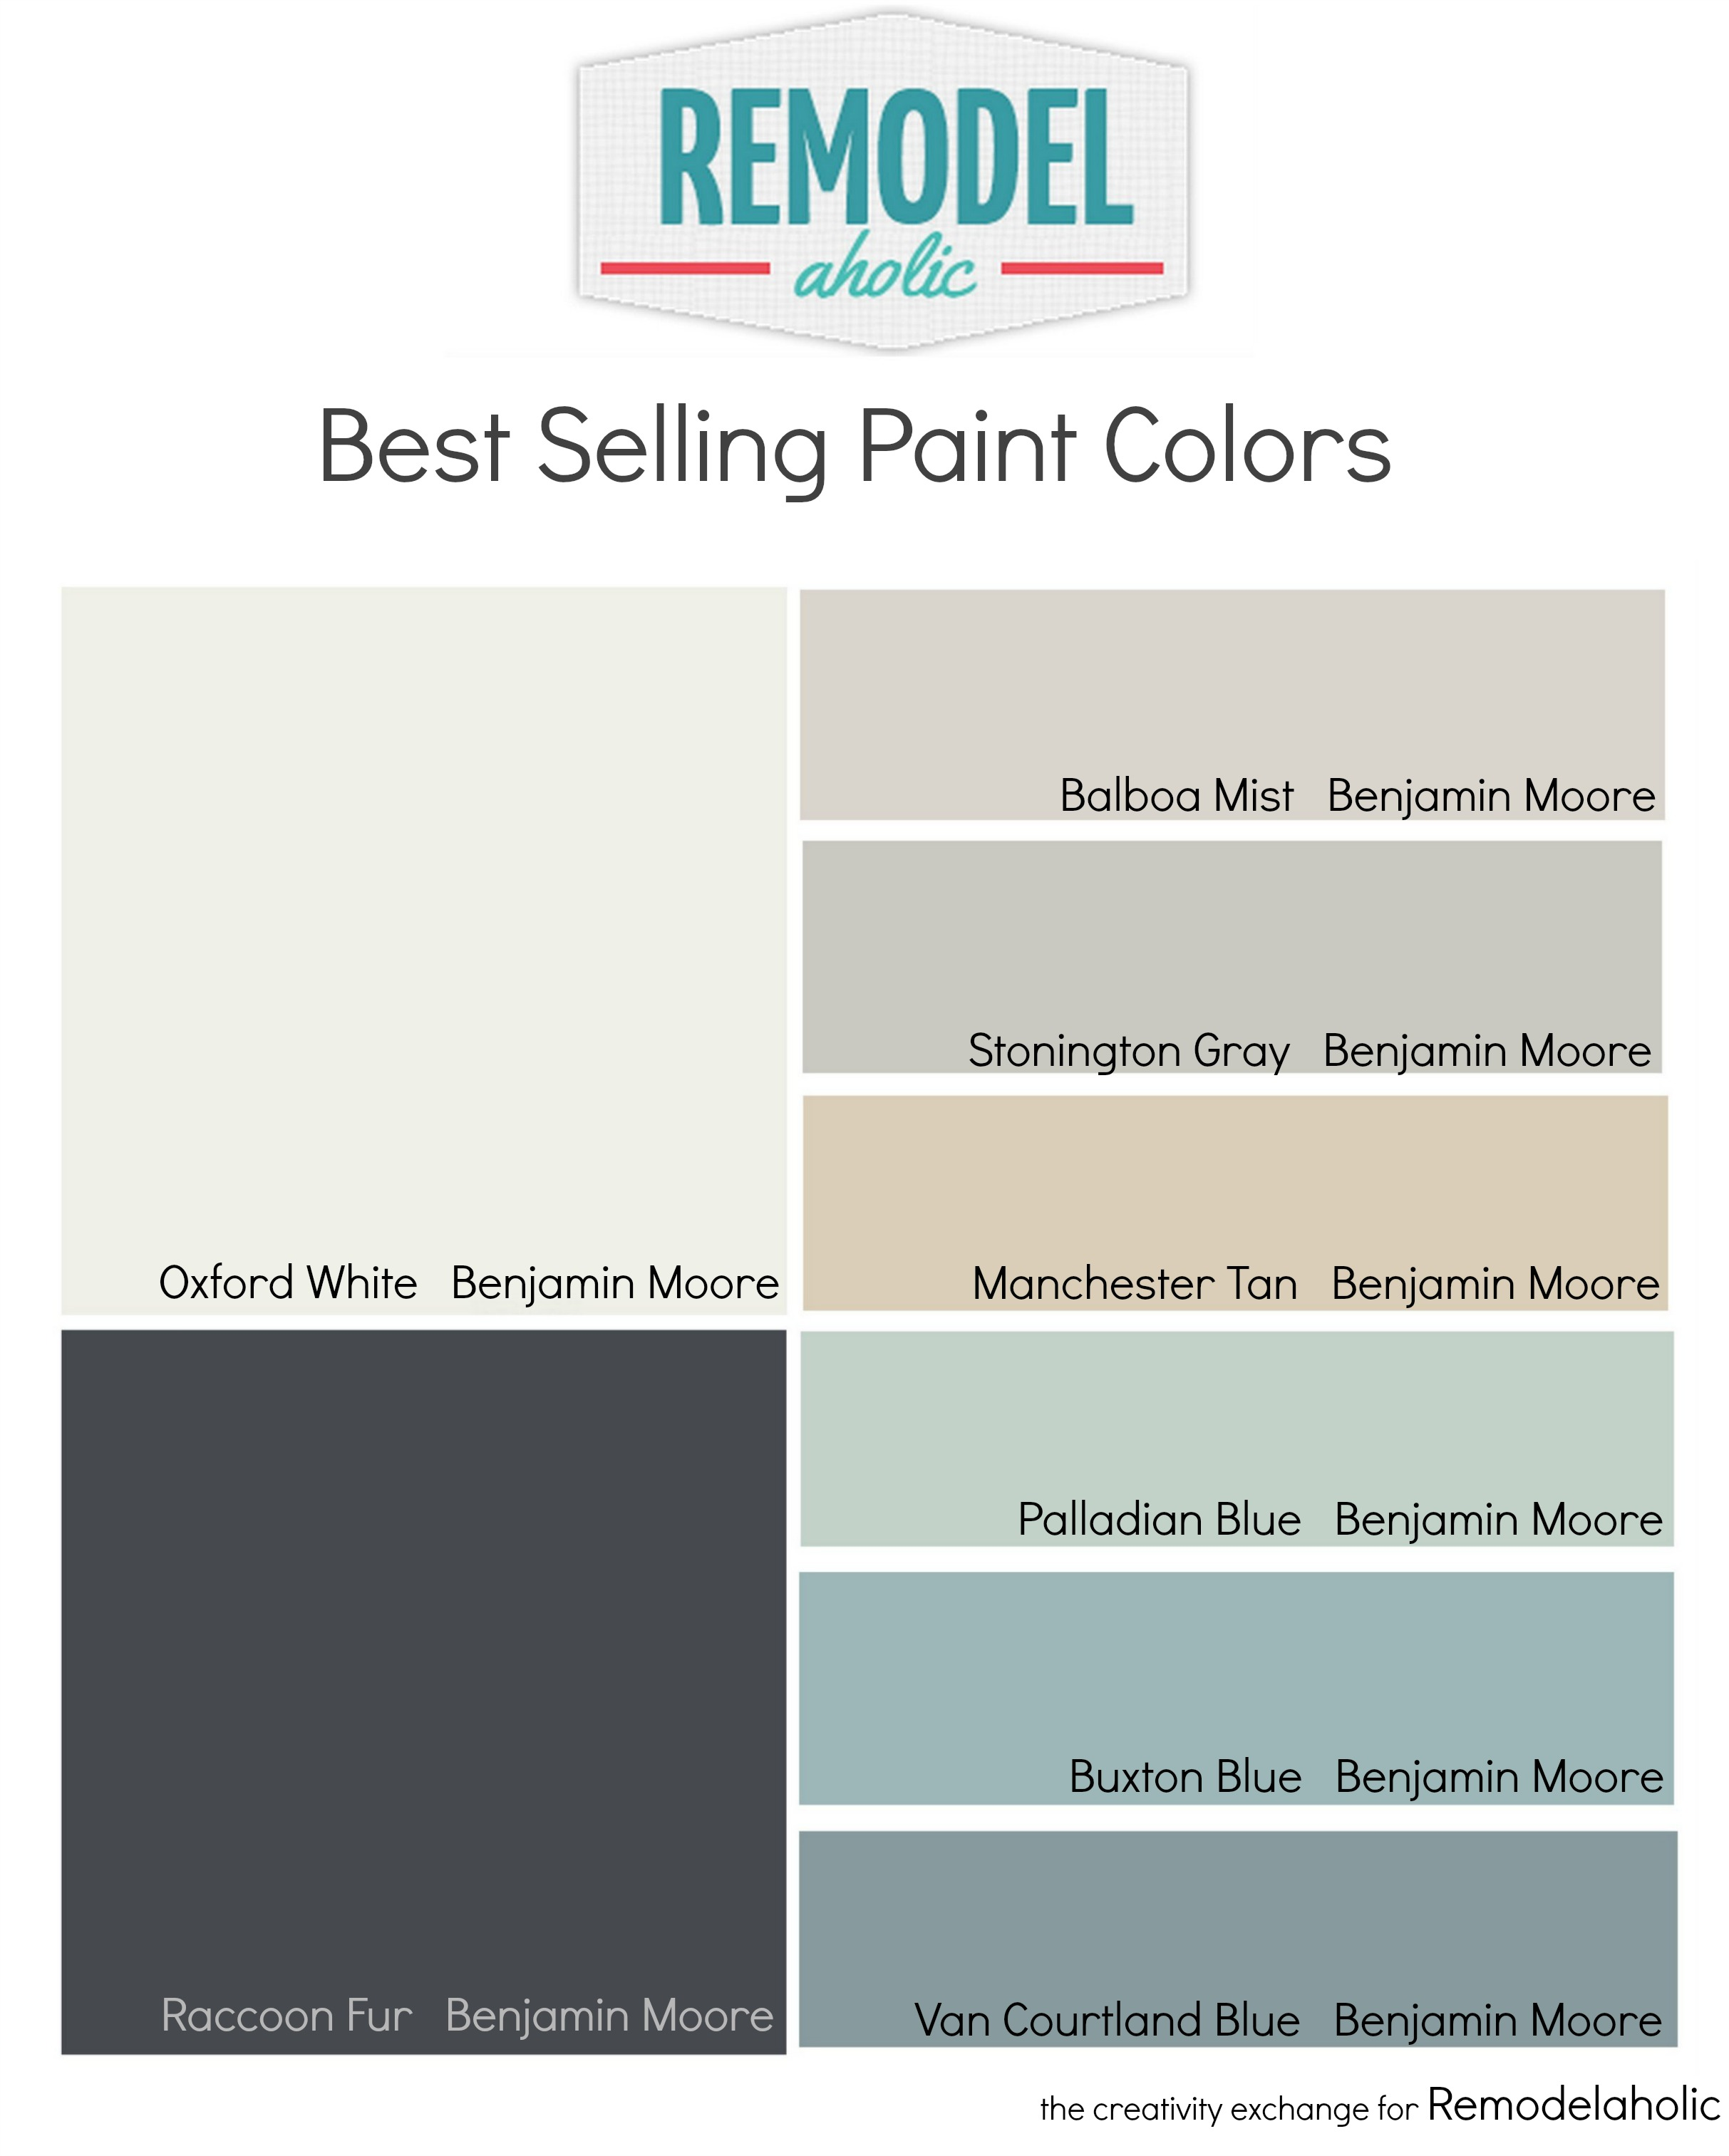 Most Popular Paint Colors Pleasing Remodelaholic  Most Popular And Best Selling Paint Colors Design Inspiration